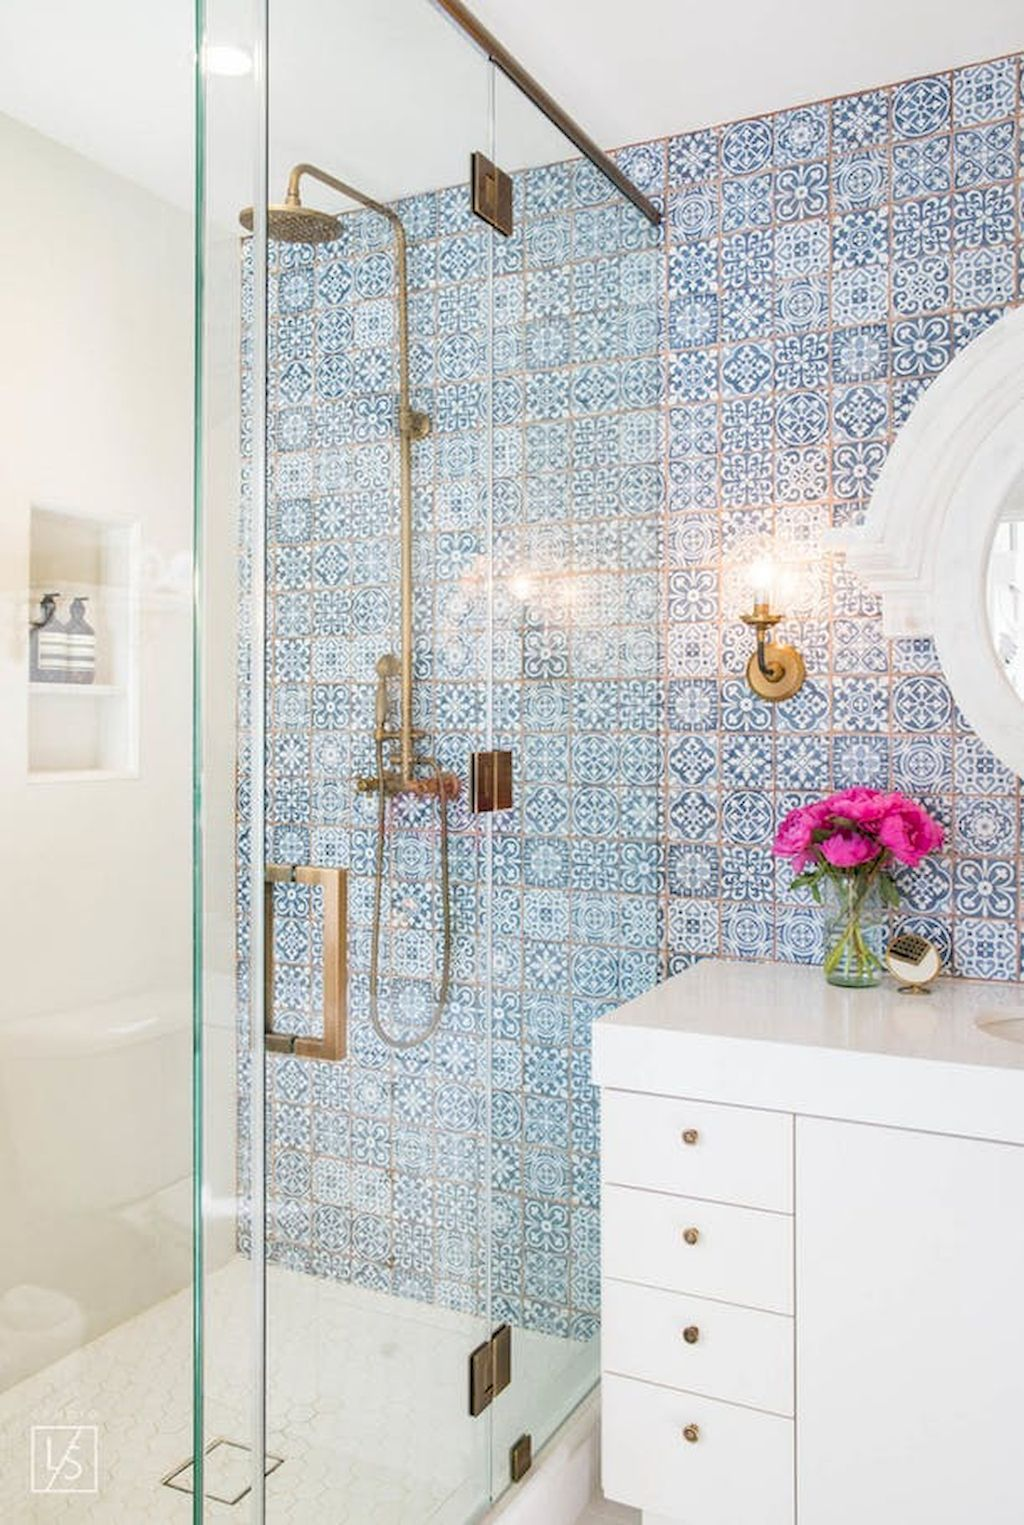 Best Inspire Bathroom Tile Pattern Ideas (15 | Tile patterns and ...